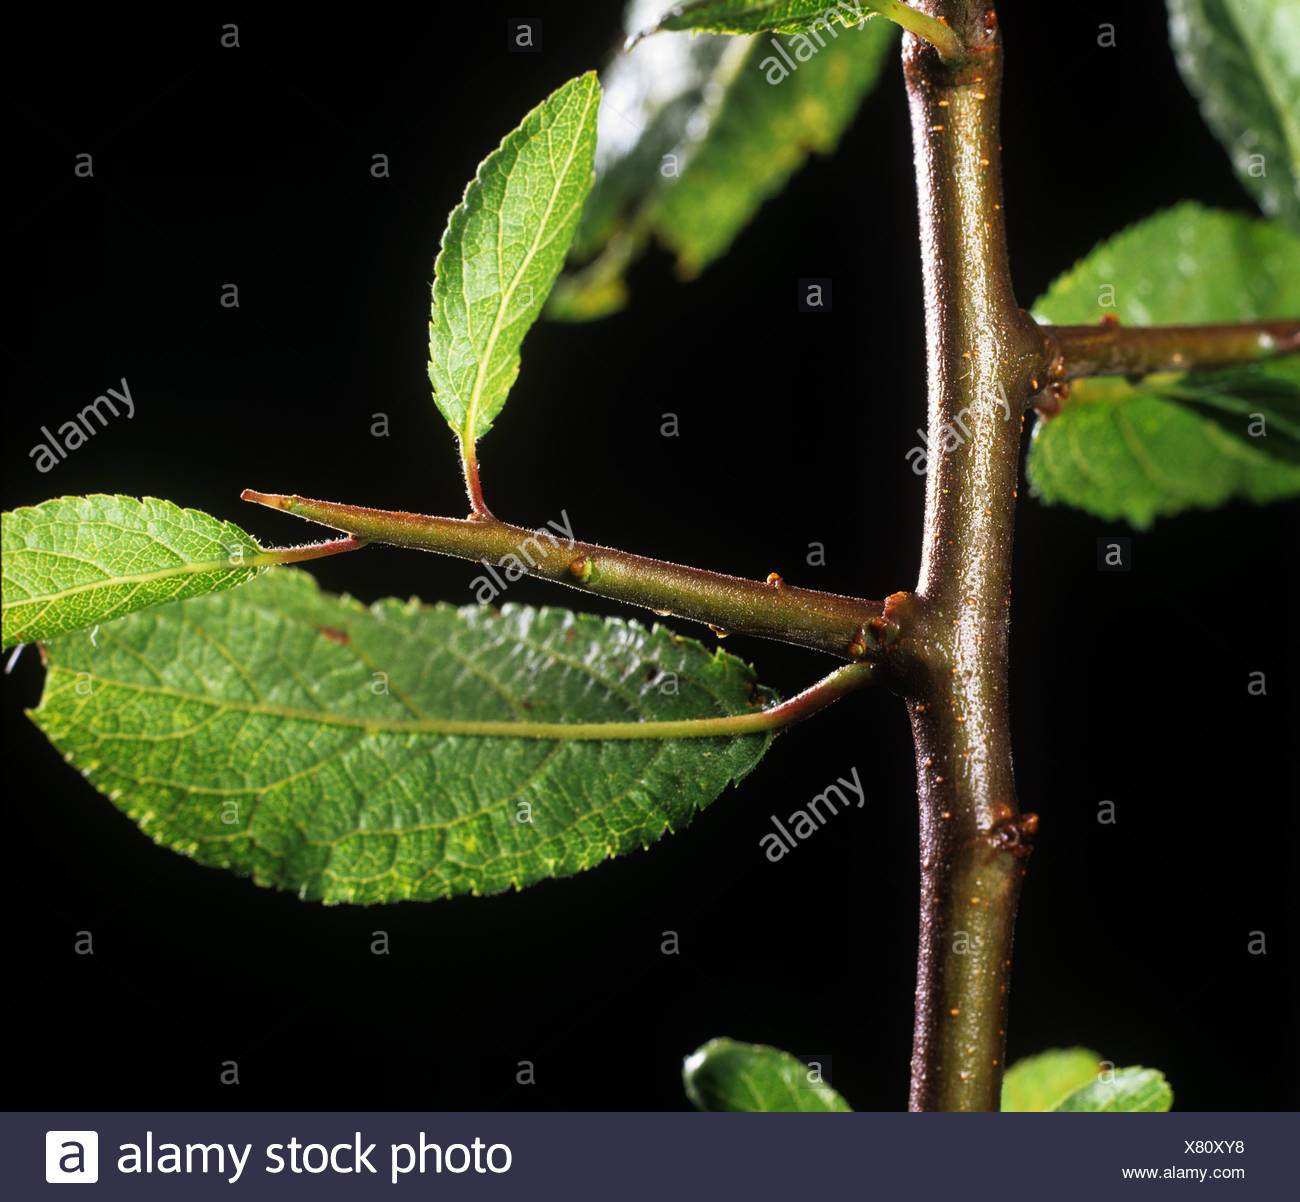 Vicious thorn on young blackthorn (Prunus spinosa) wood - Stock Image